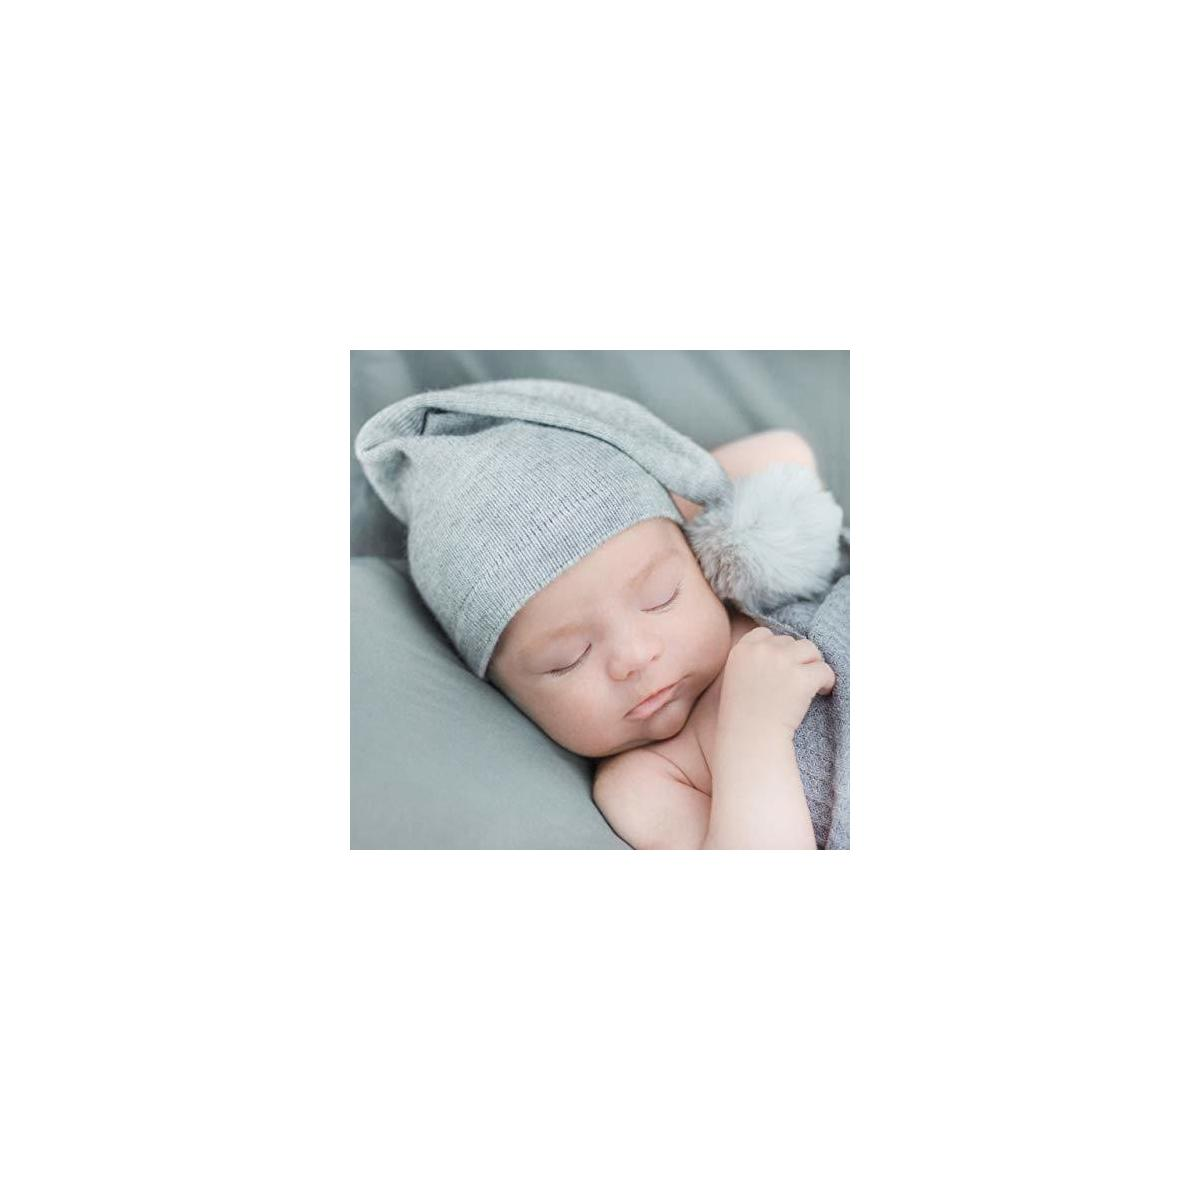 First Landings 2 Wool Newborn Hats | Newborn Photography Props for Boys or Girls | Twin Baby Gifts | Unique Baby Gift Set